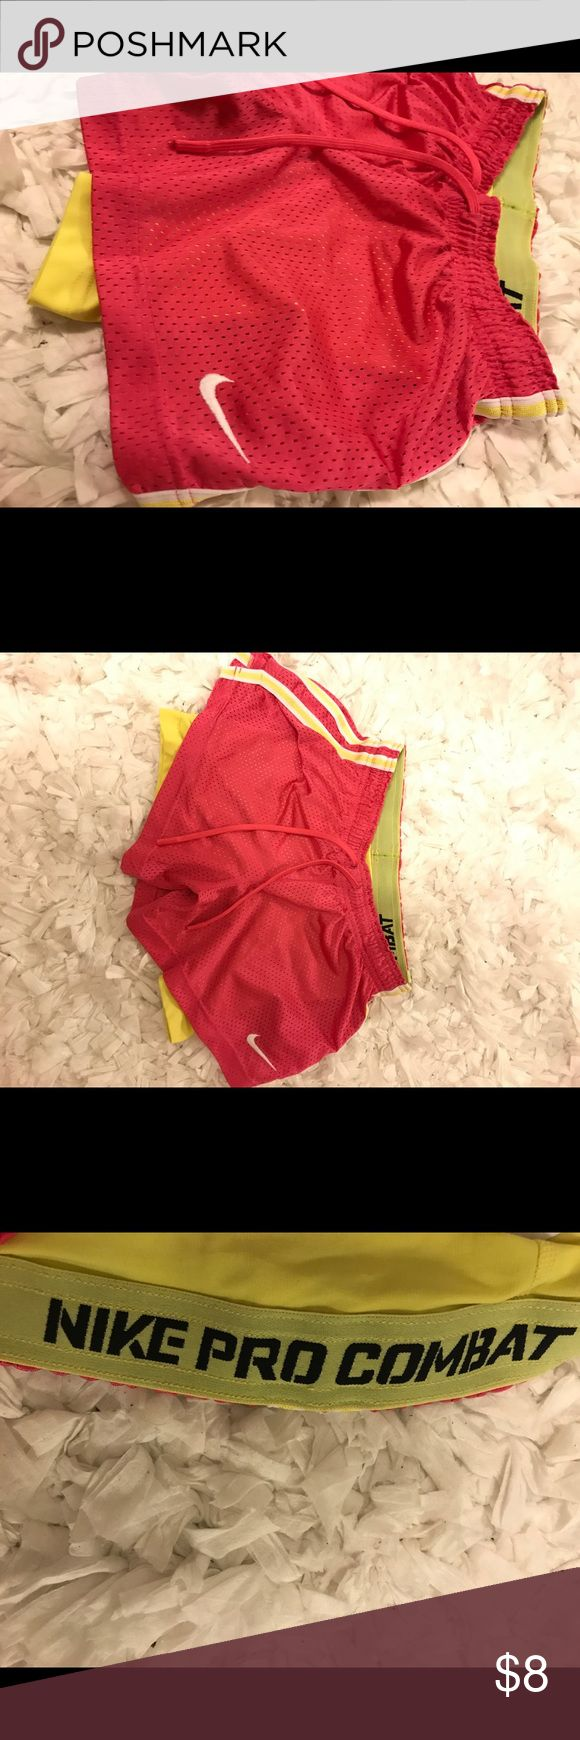 Nike Pro Combat short- Workout Pink outer mesh material, inner attached Nike pros (yellow) Nike Shorts